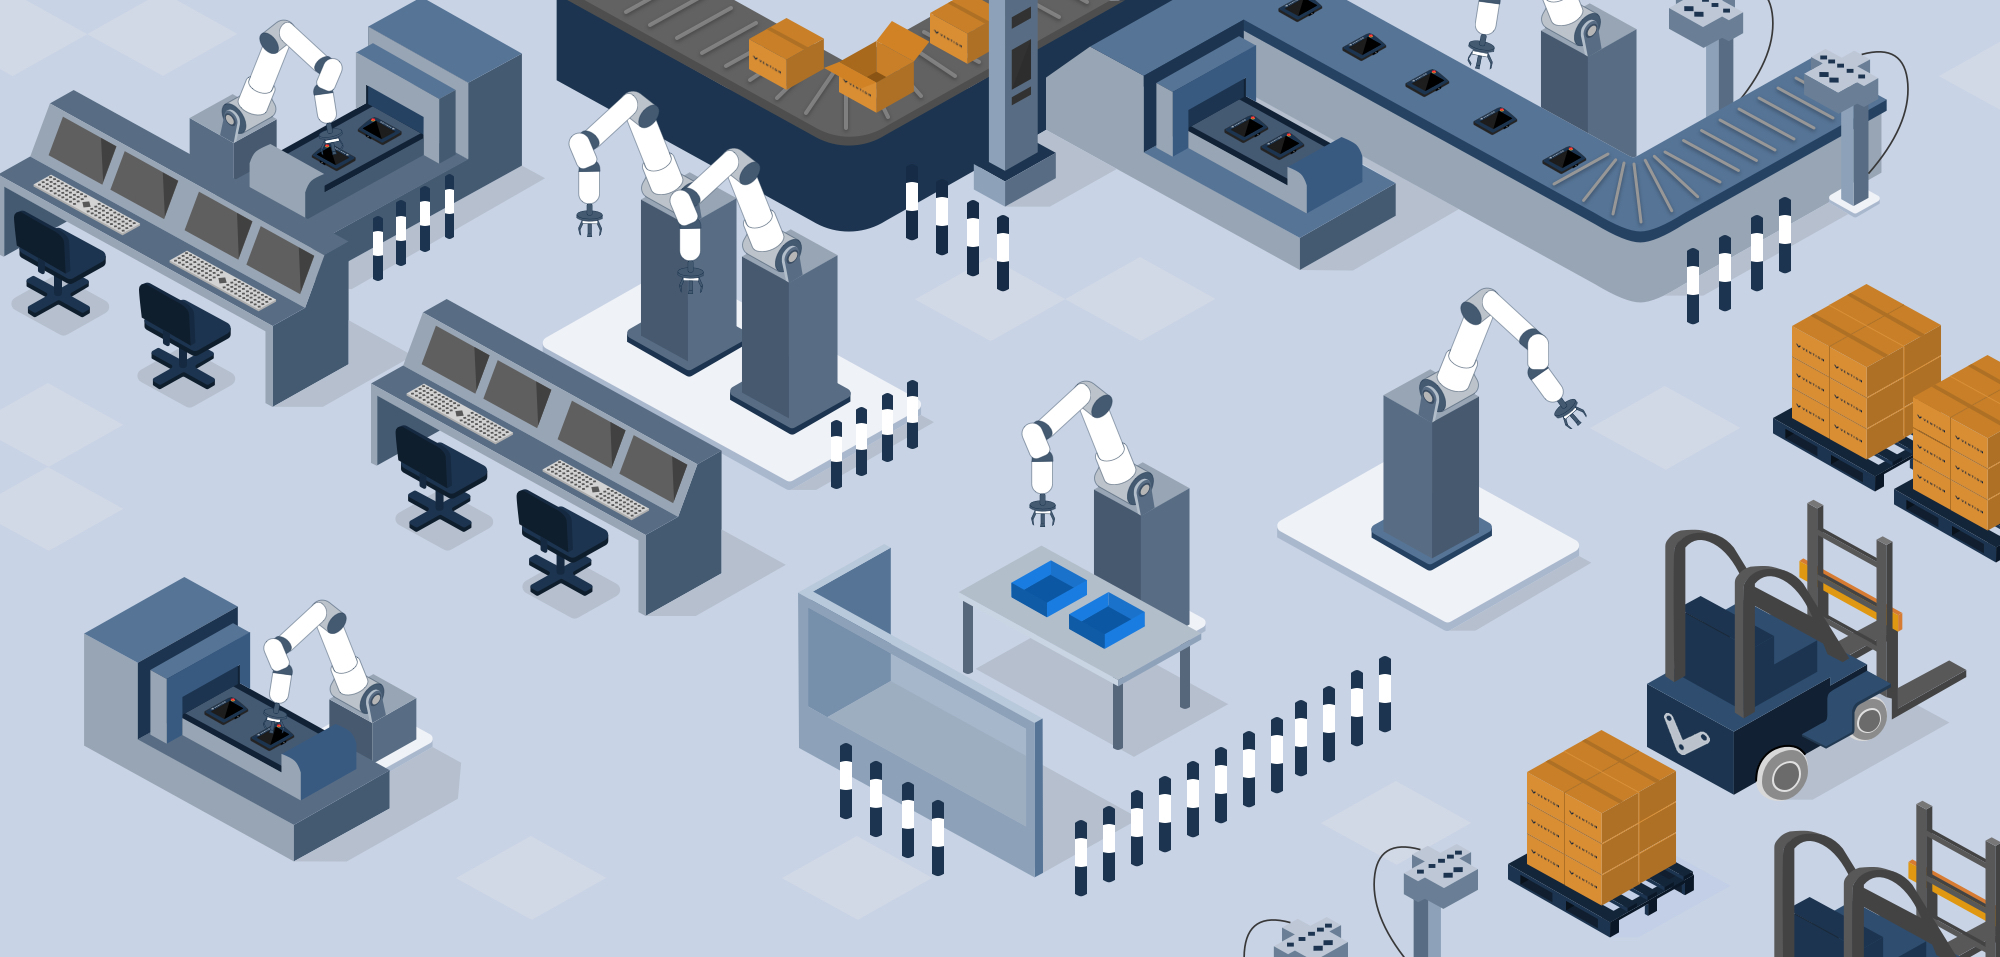 Democratization of industrial automation